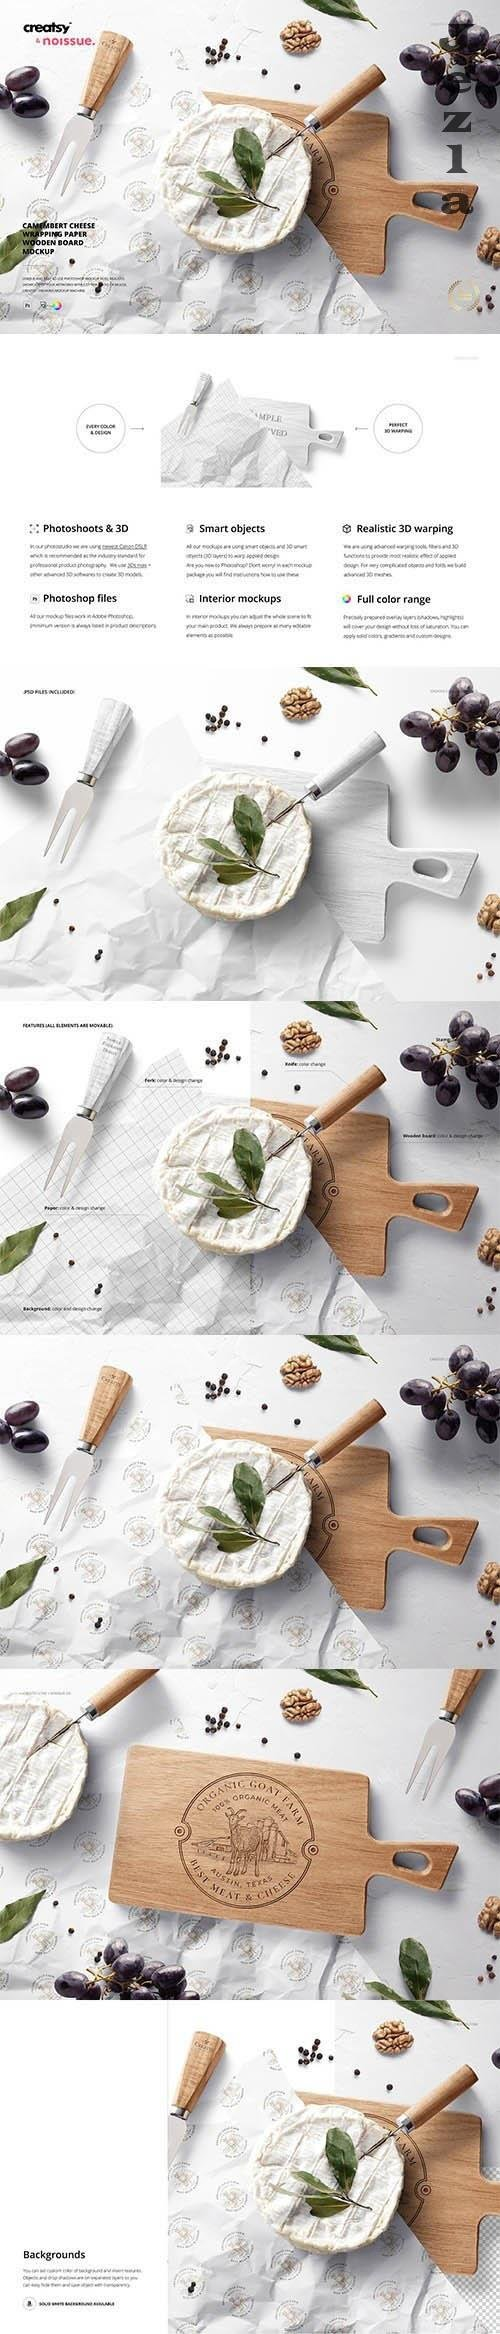 Wrapping Paper Wooden Board Mockup - 6389448